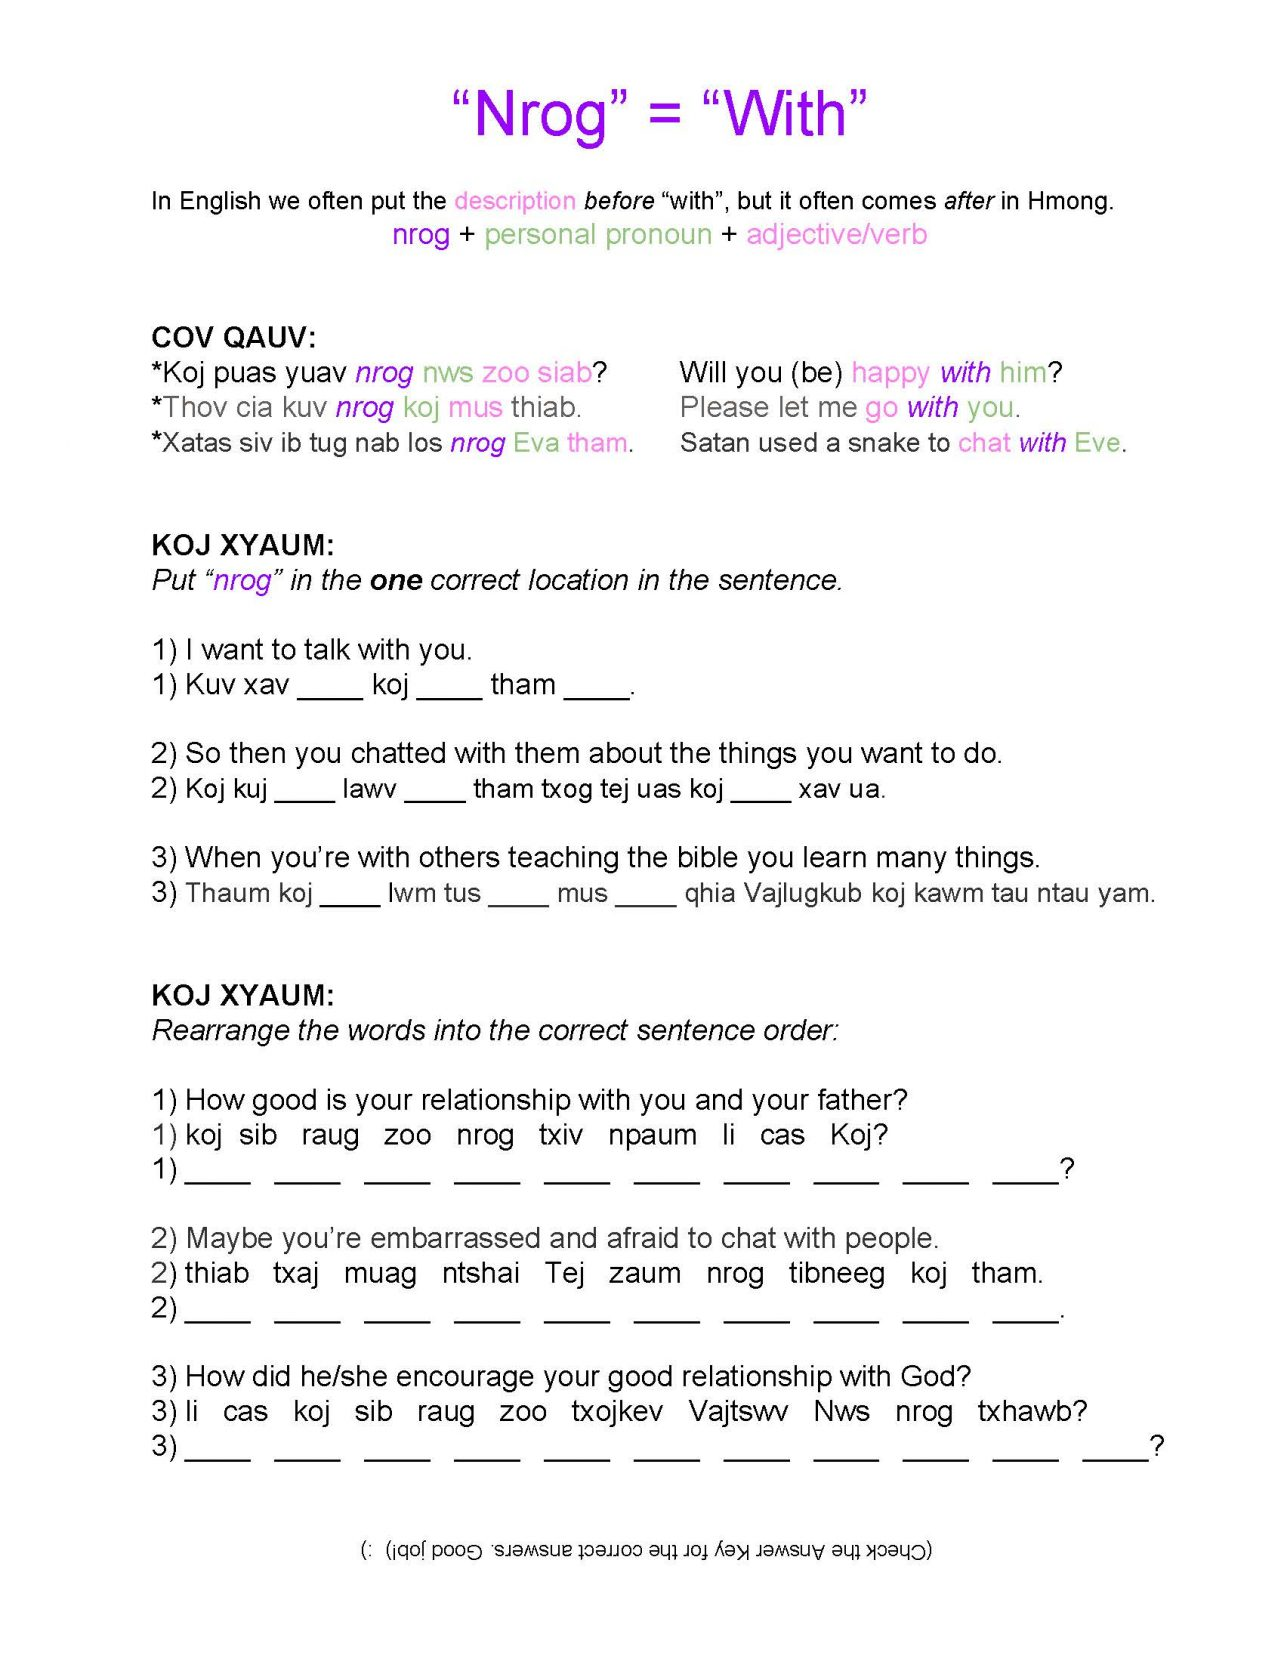 worksheet Your And You Re Worksheet how to use the hmong word nrog in this fun and easy worksheet trying figure out when youre service or talking with your friends well